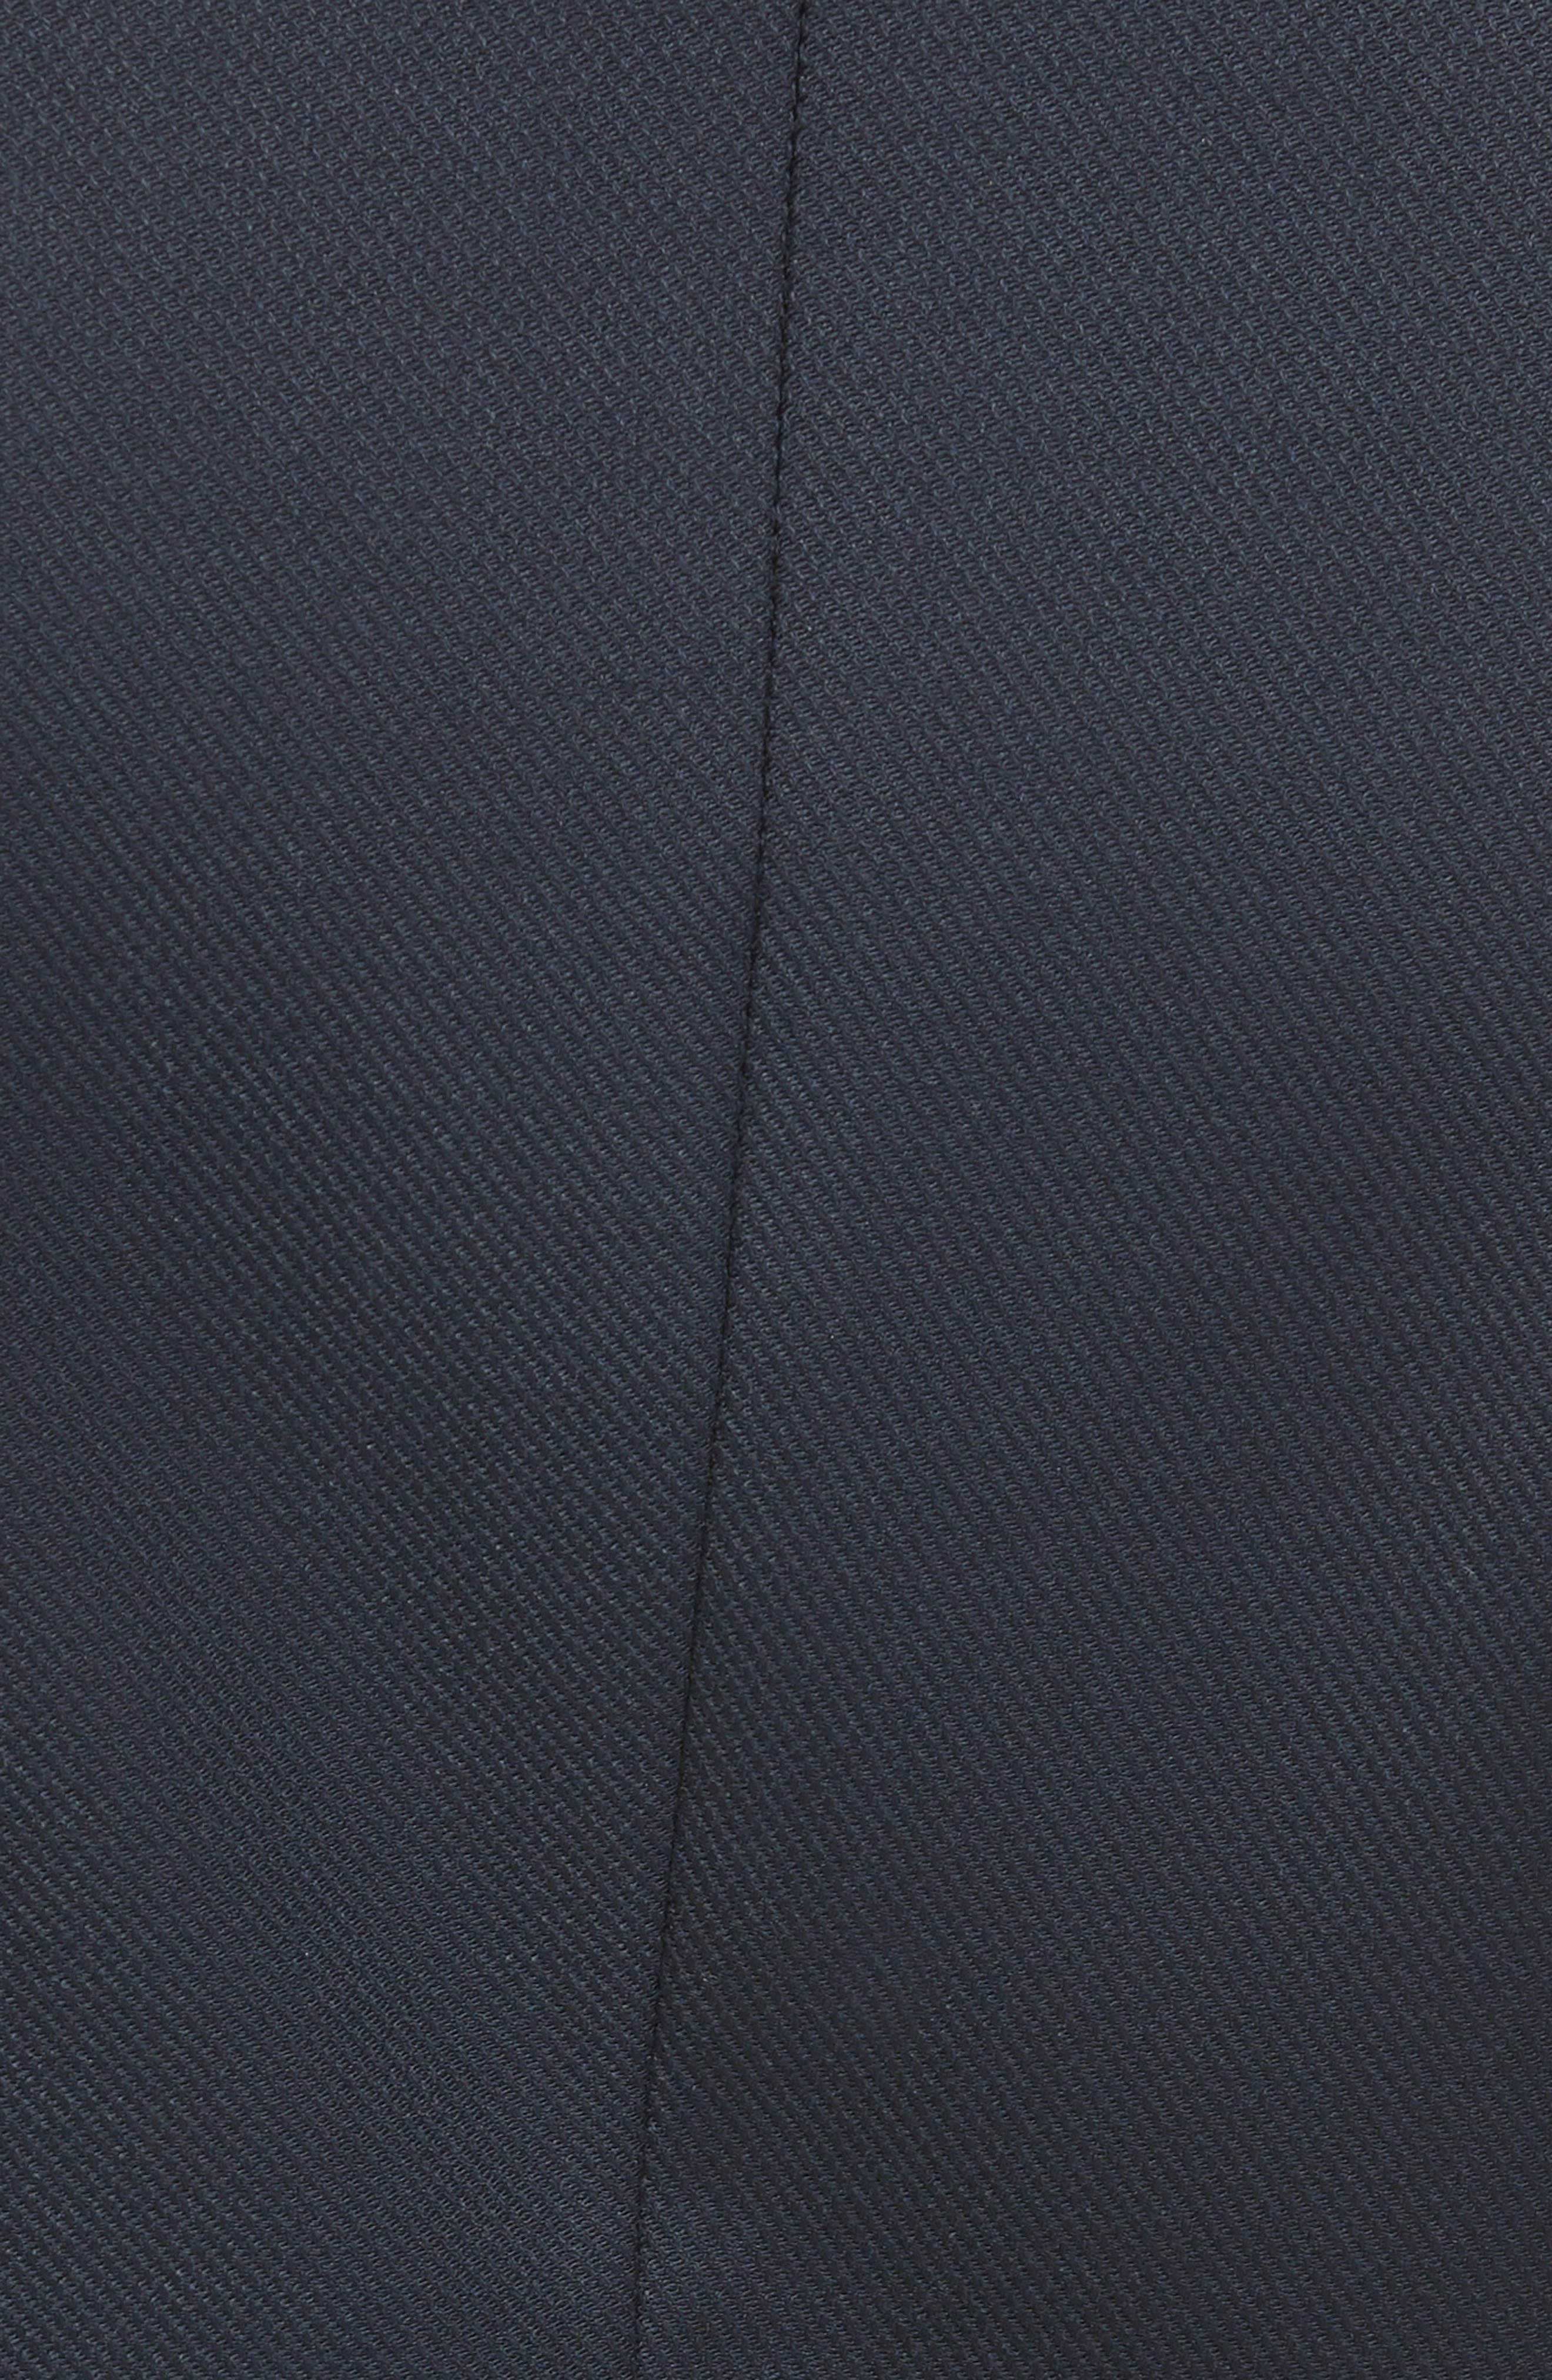 Ted Working Title Rivaa Tailored Jacket,                             Alternate thumbnail 7, color,                             DARK BLUE